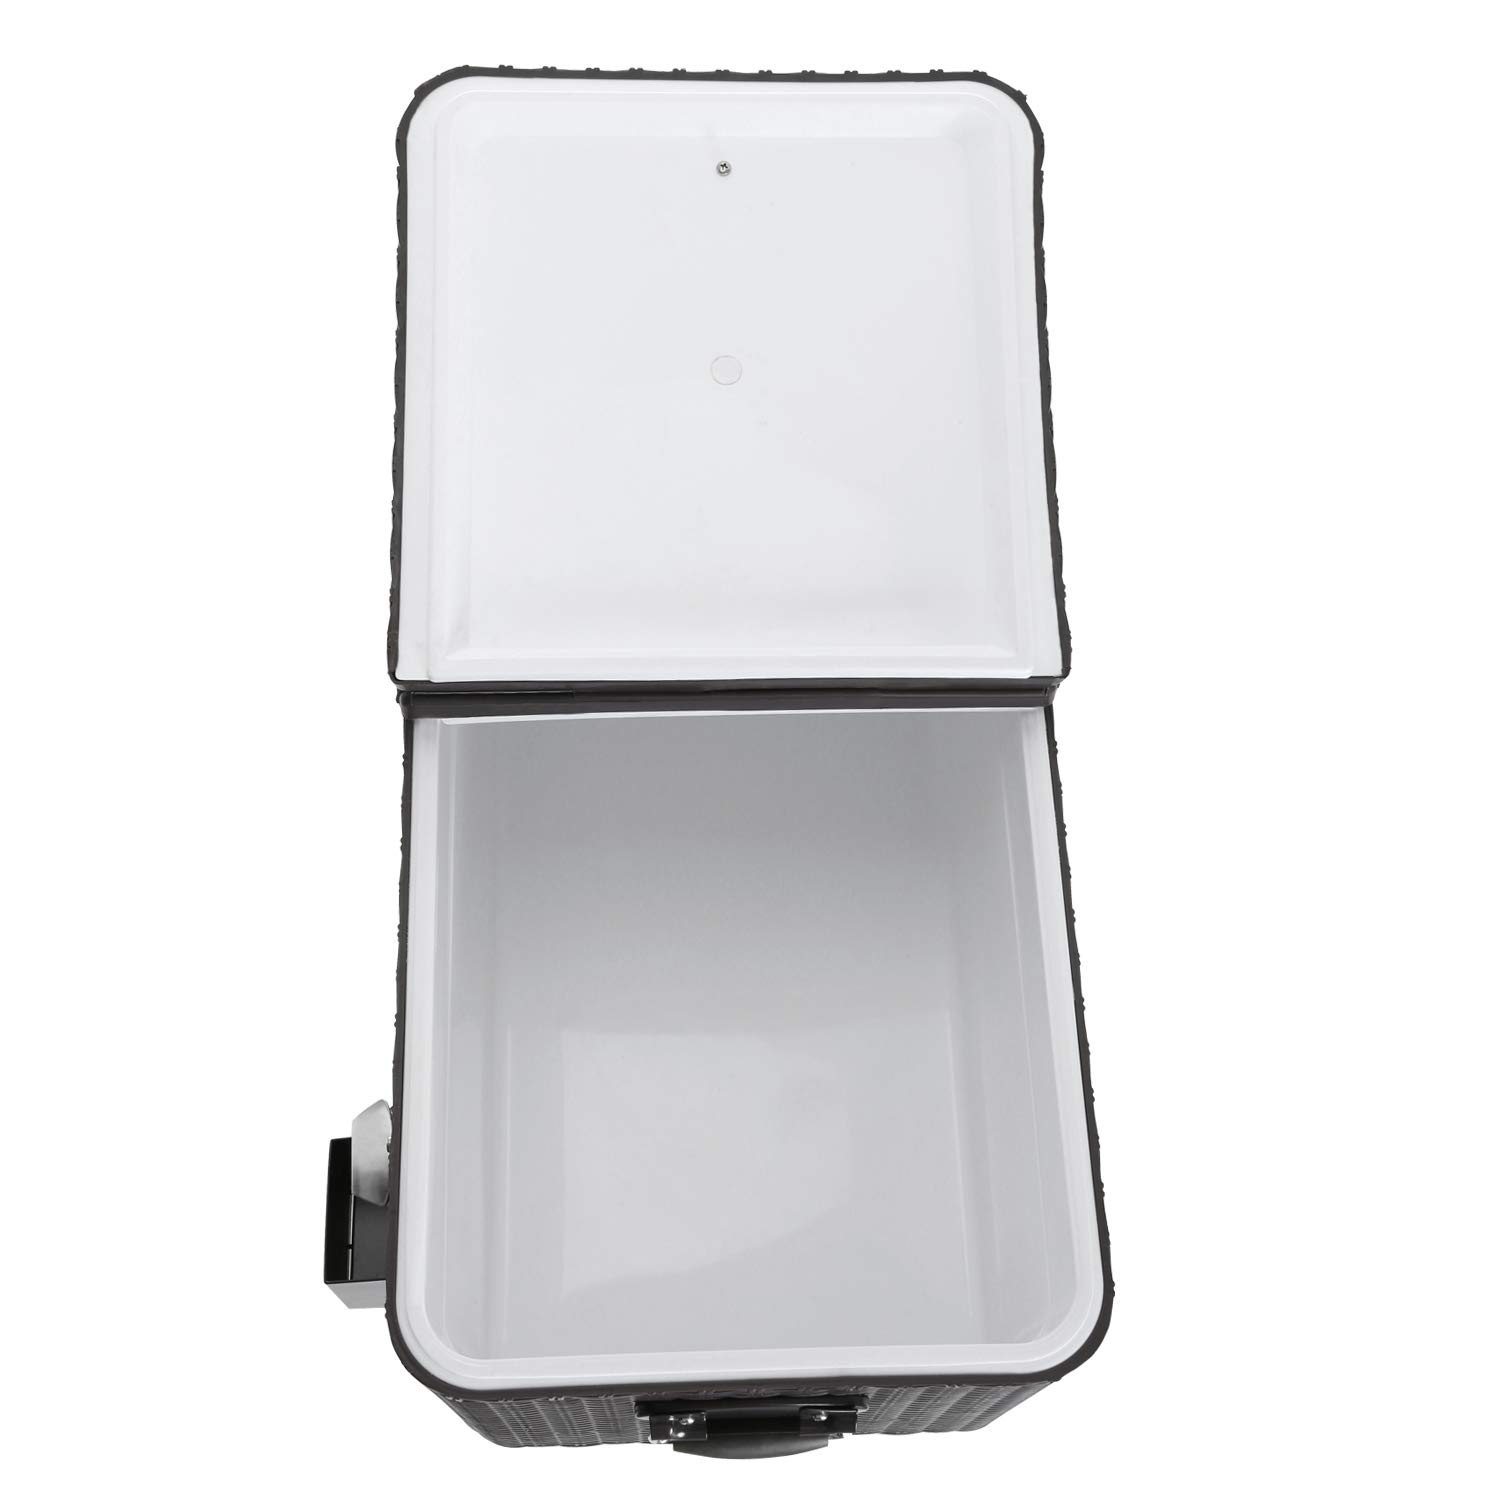 CAIDE-STORE with a Free Cover 80 Quart Outdoor Portable Cooler Patio Ice Chest Cooler Cart on Wheel by CAIDE-STORE (Image #6)